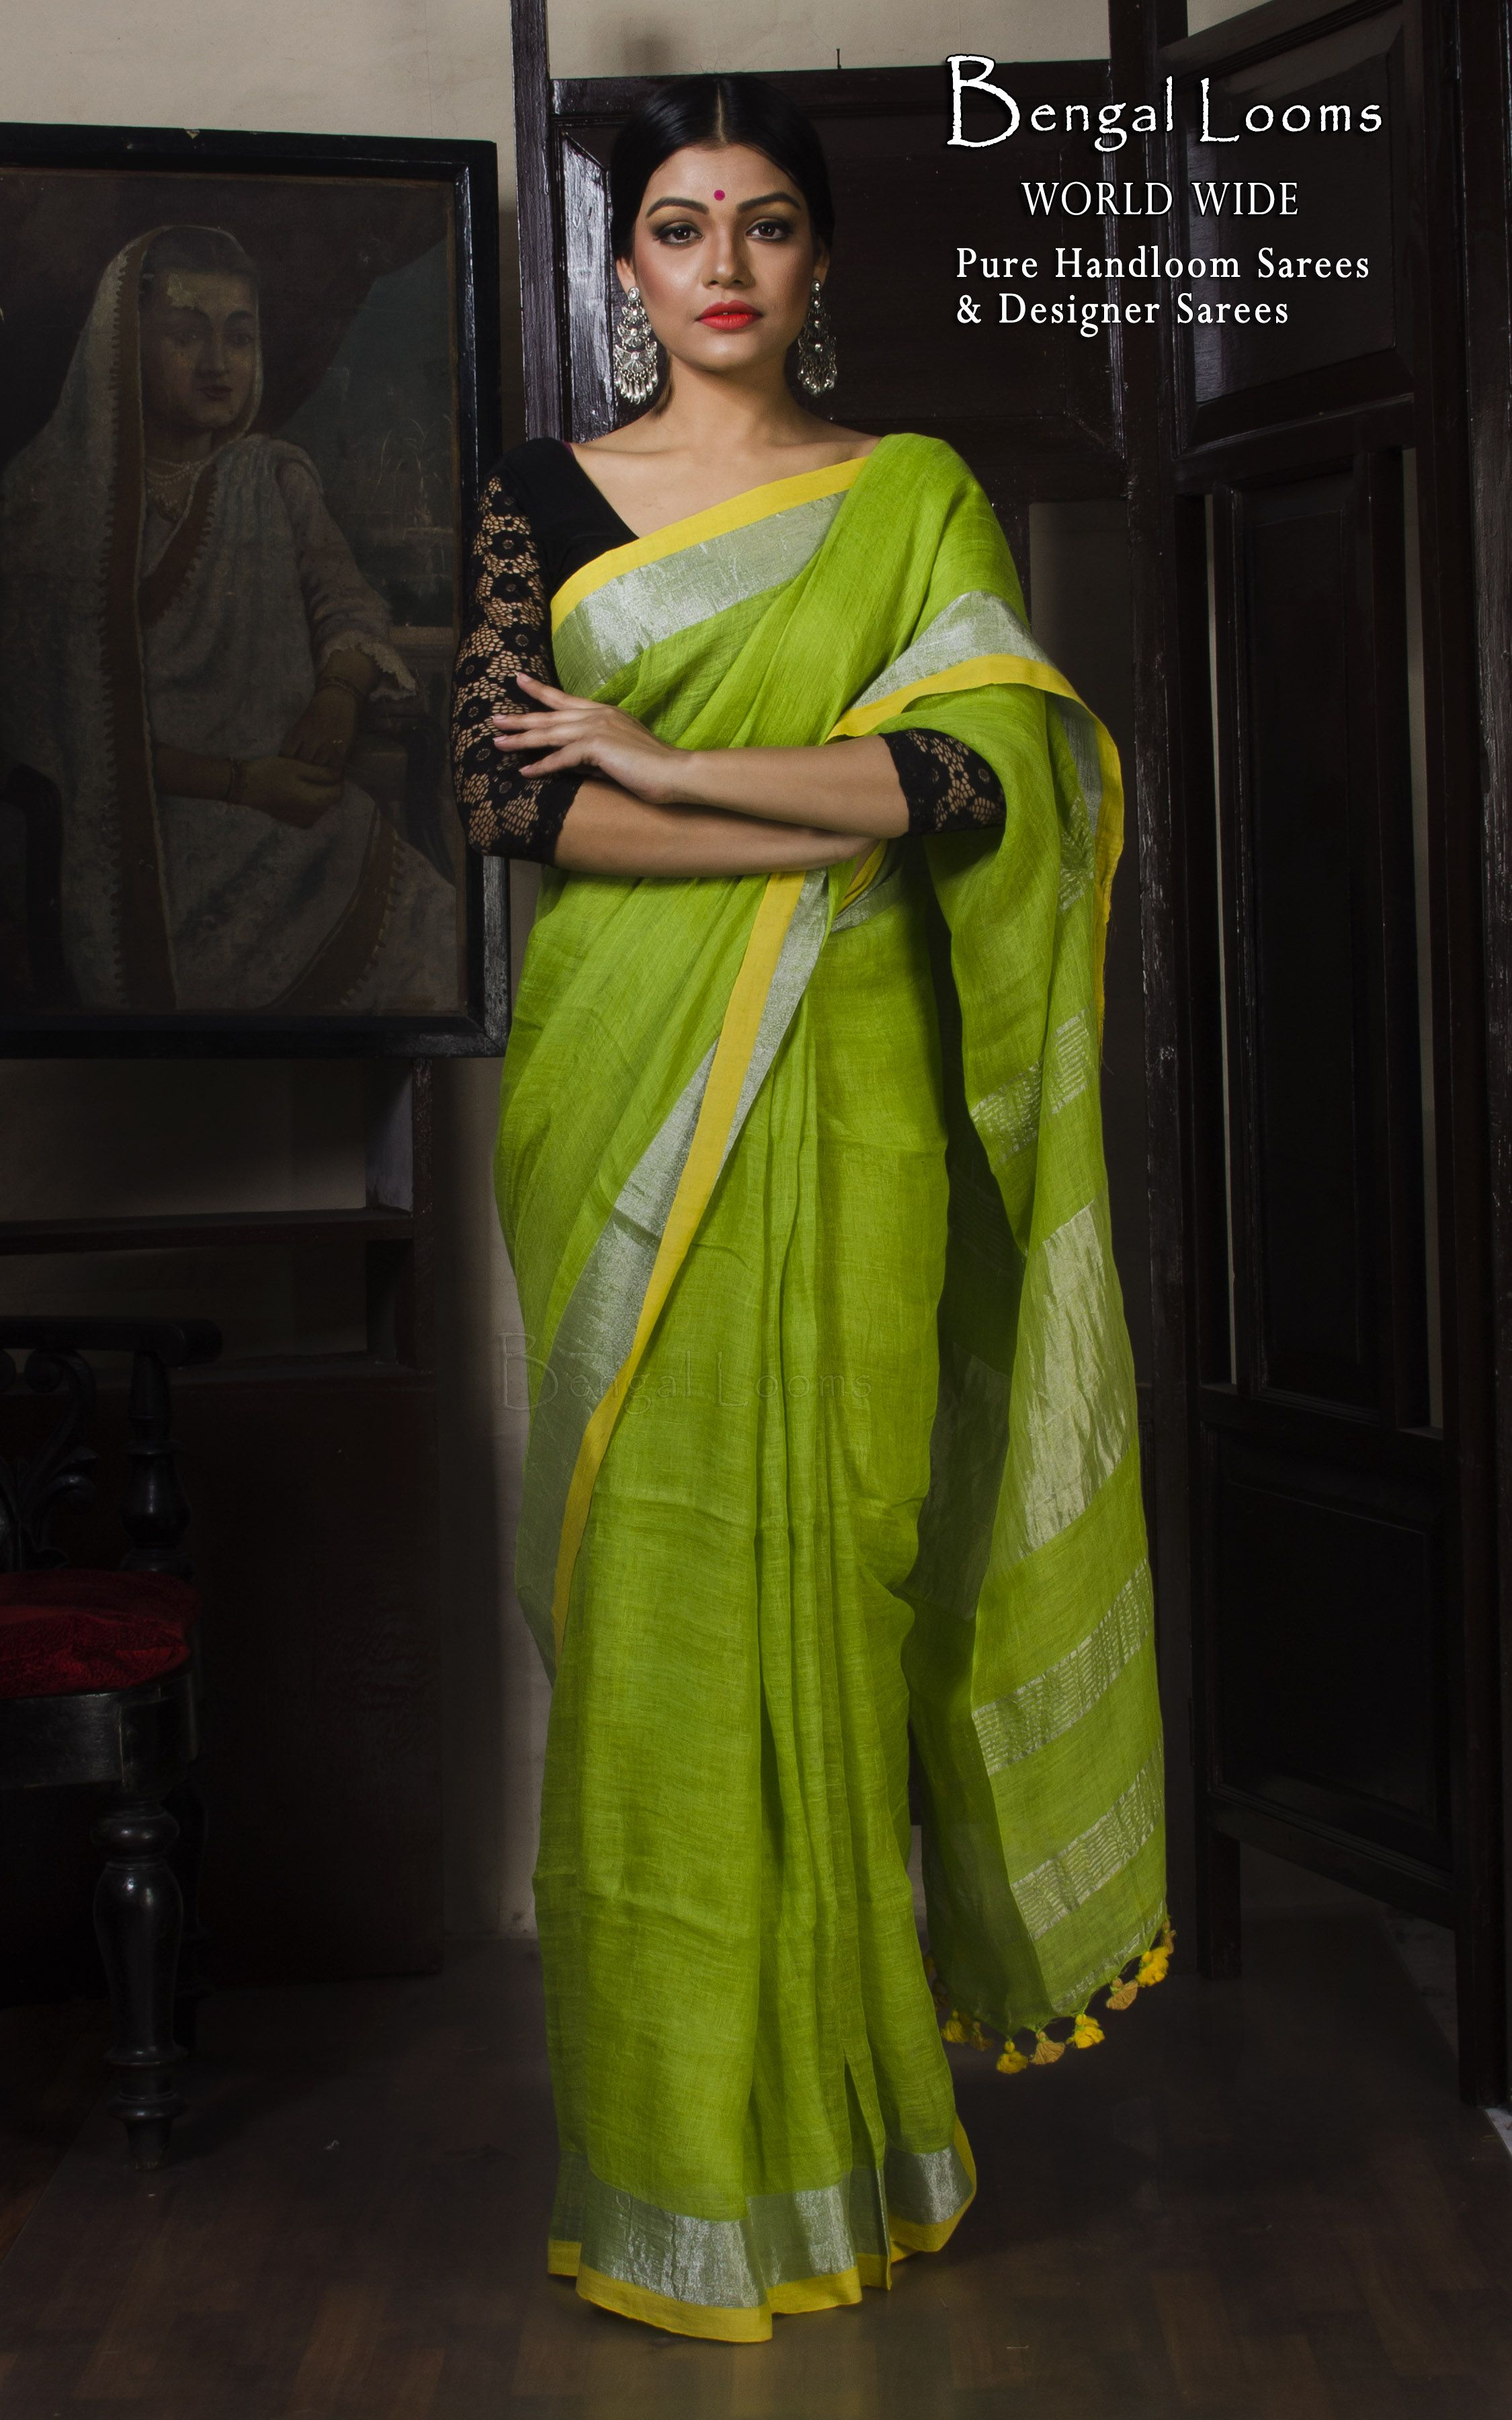 742b1945b0f383 Linen Saree With Silver Zari Border and in Lime Green Color